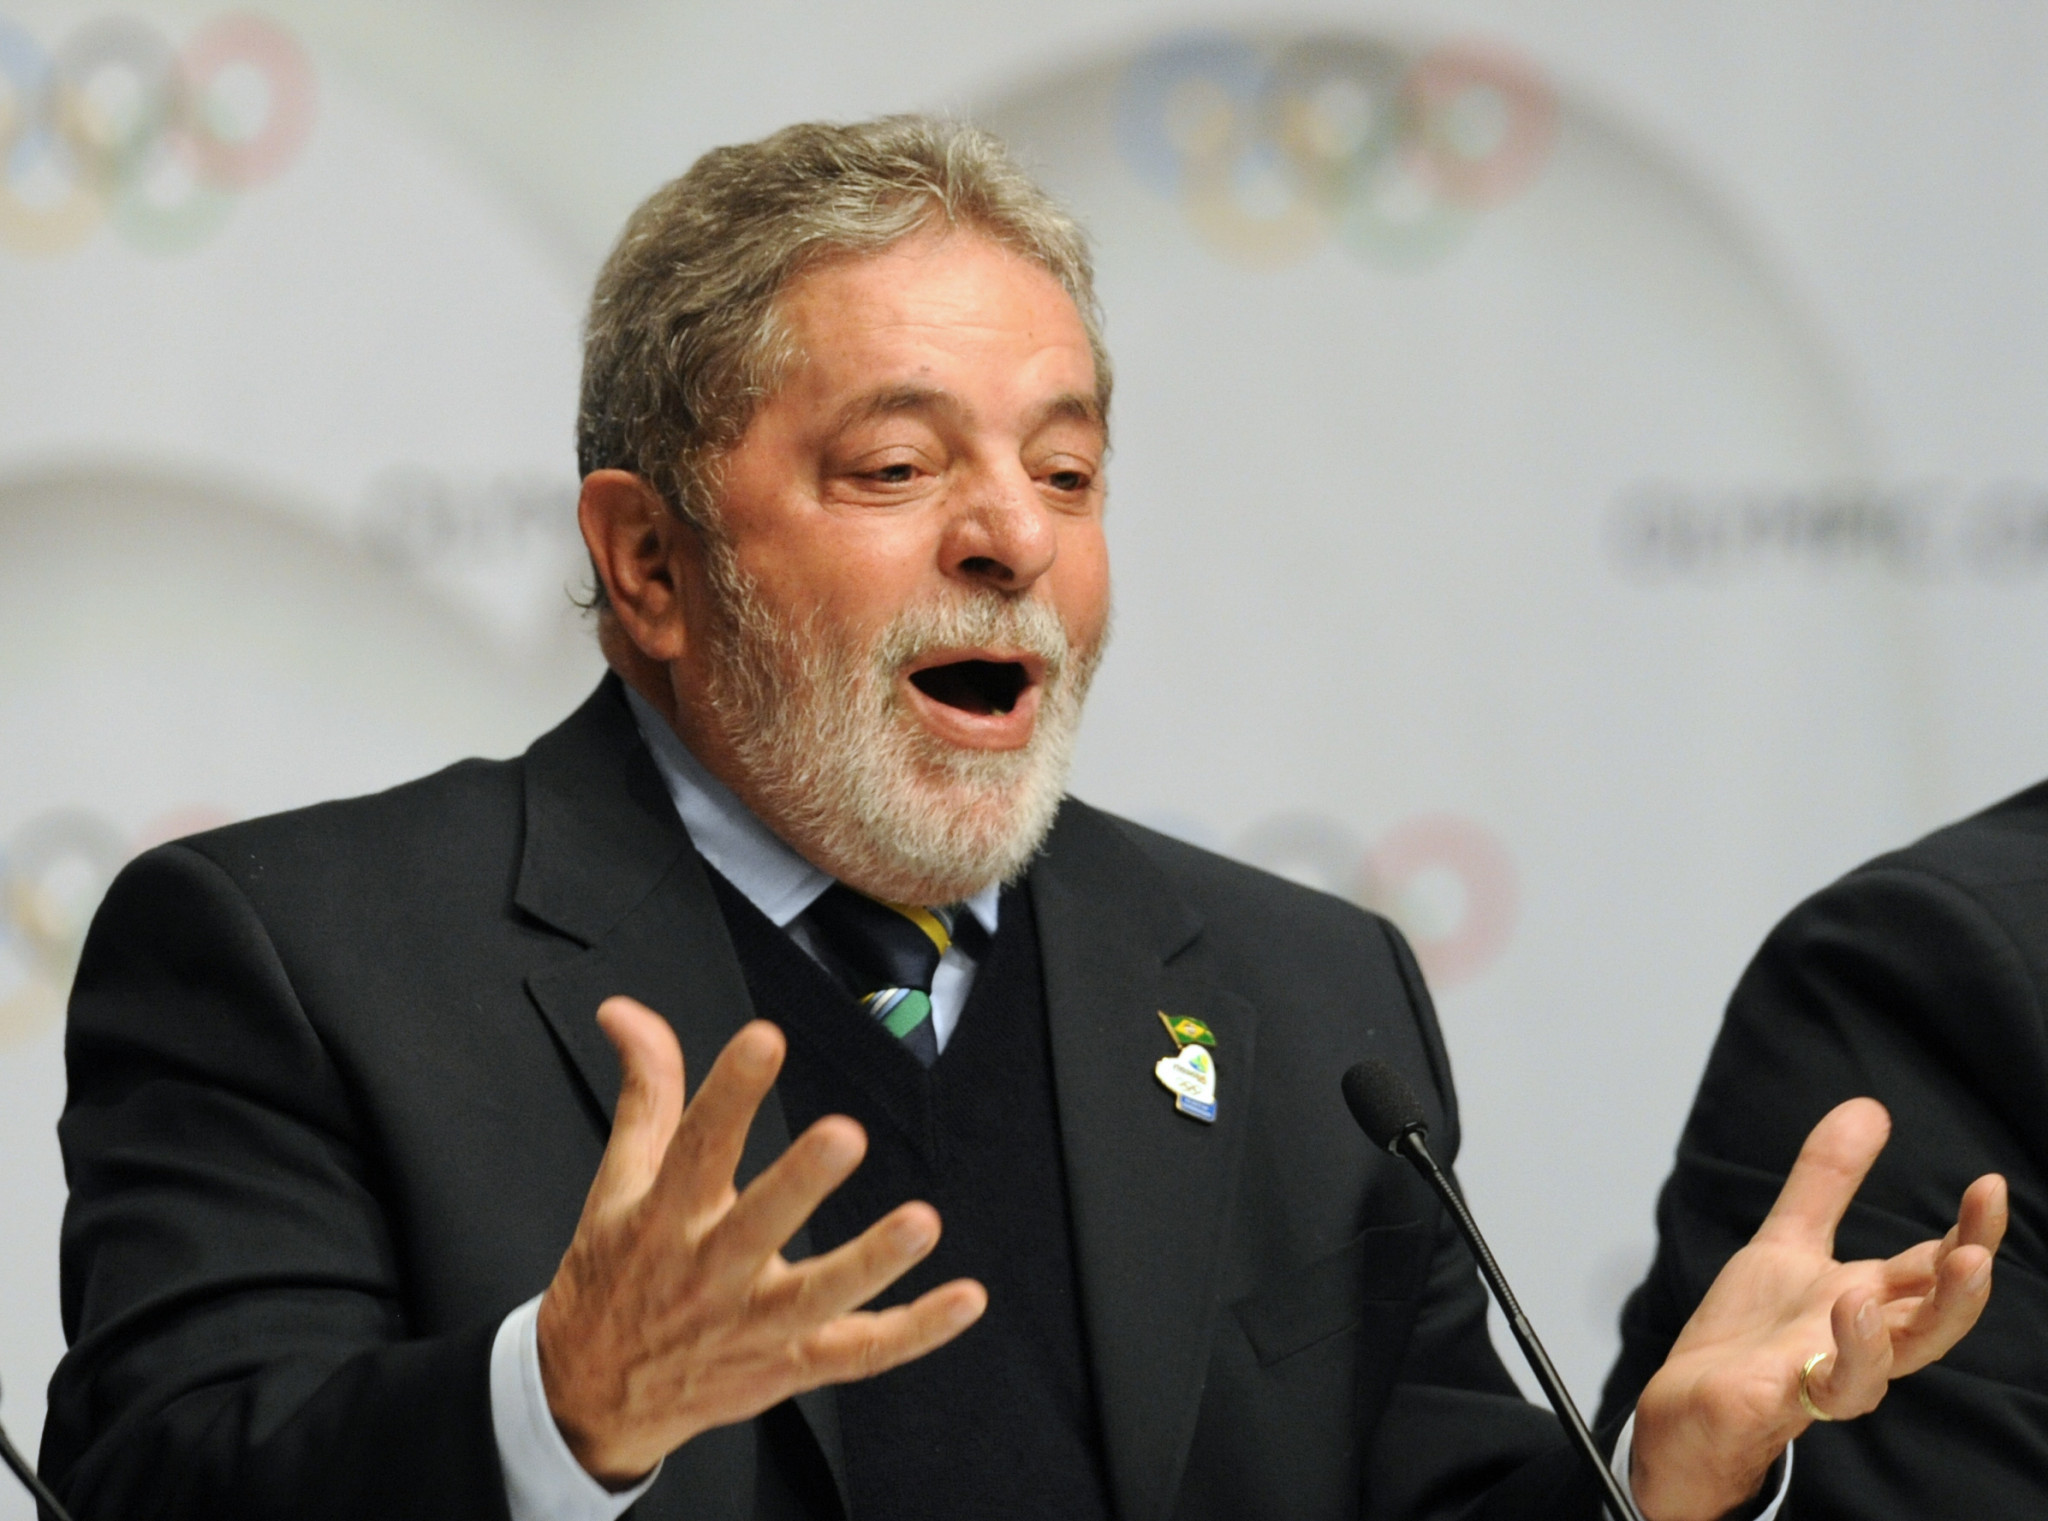 Ex-Brazilian President Lula called to testify on Rio 2016 vote-buying investigation